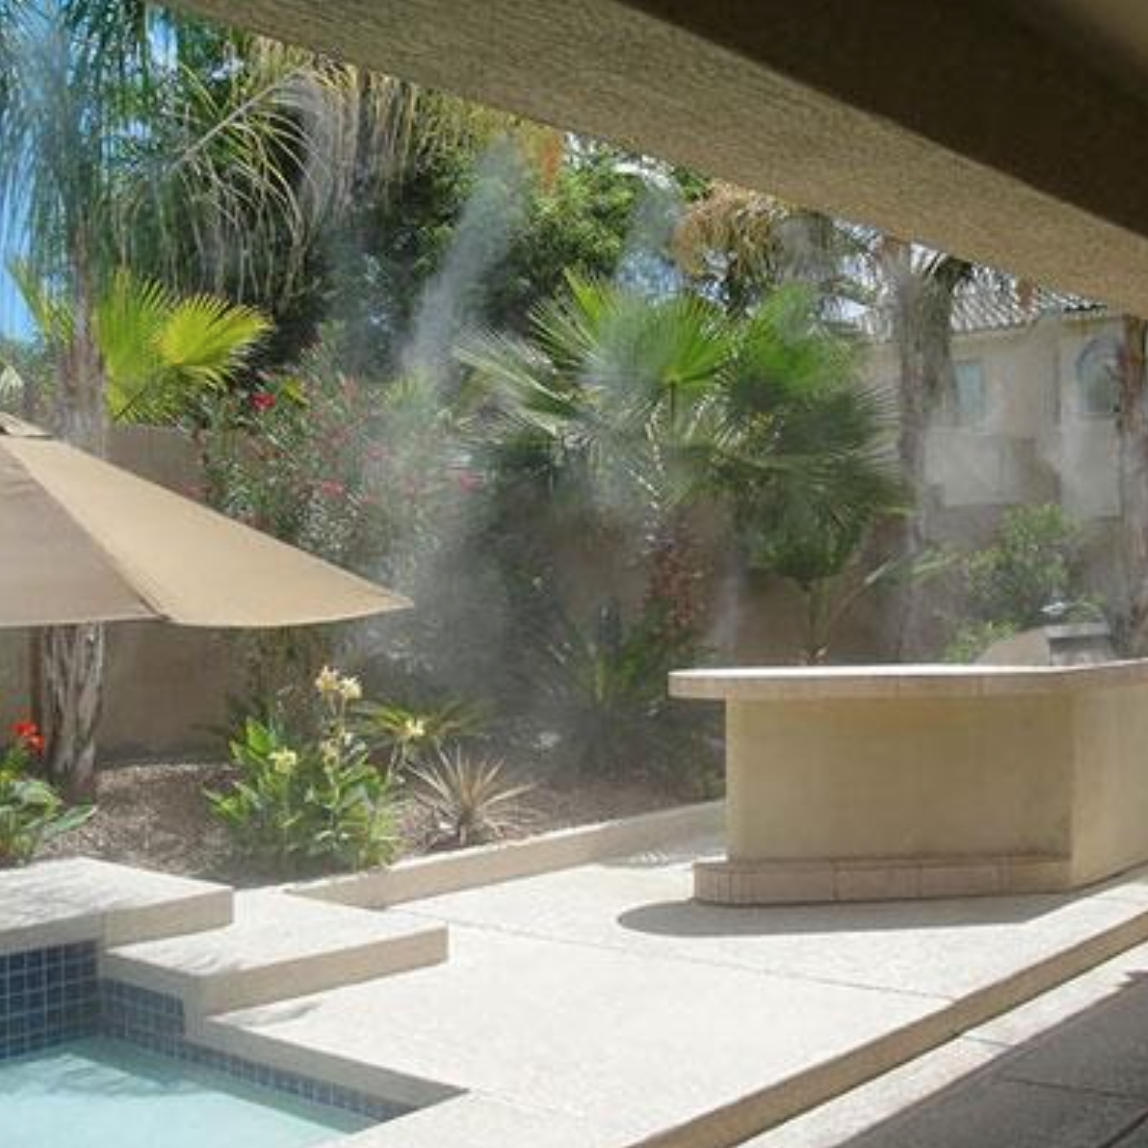 Everyone Is Talking About Misting Systems: What to Know